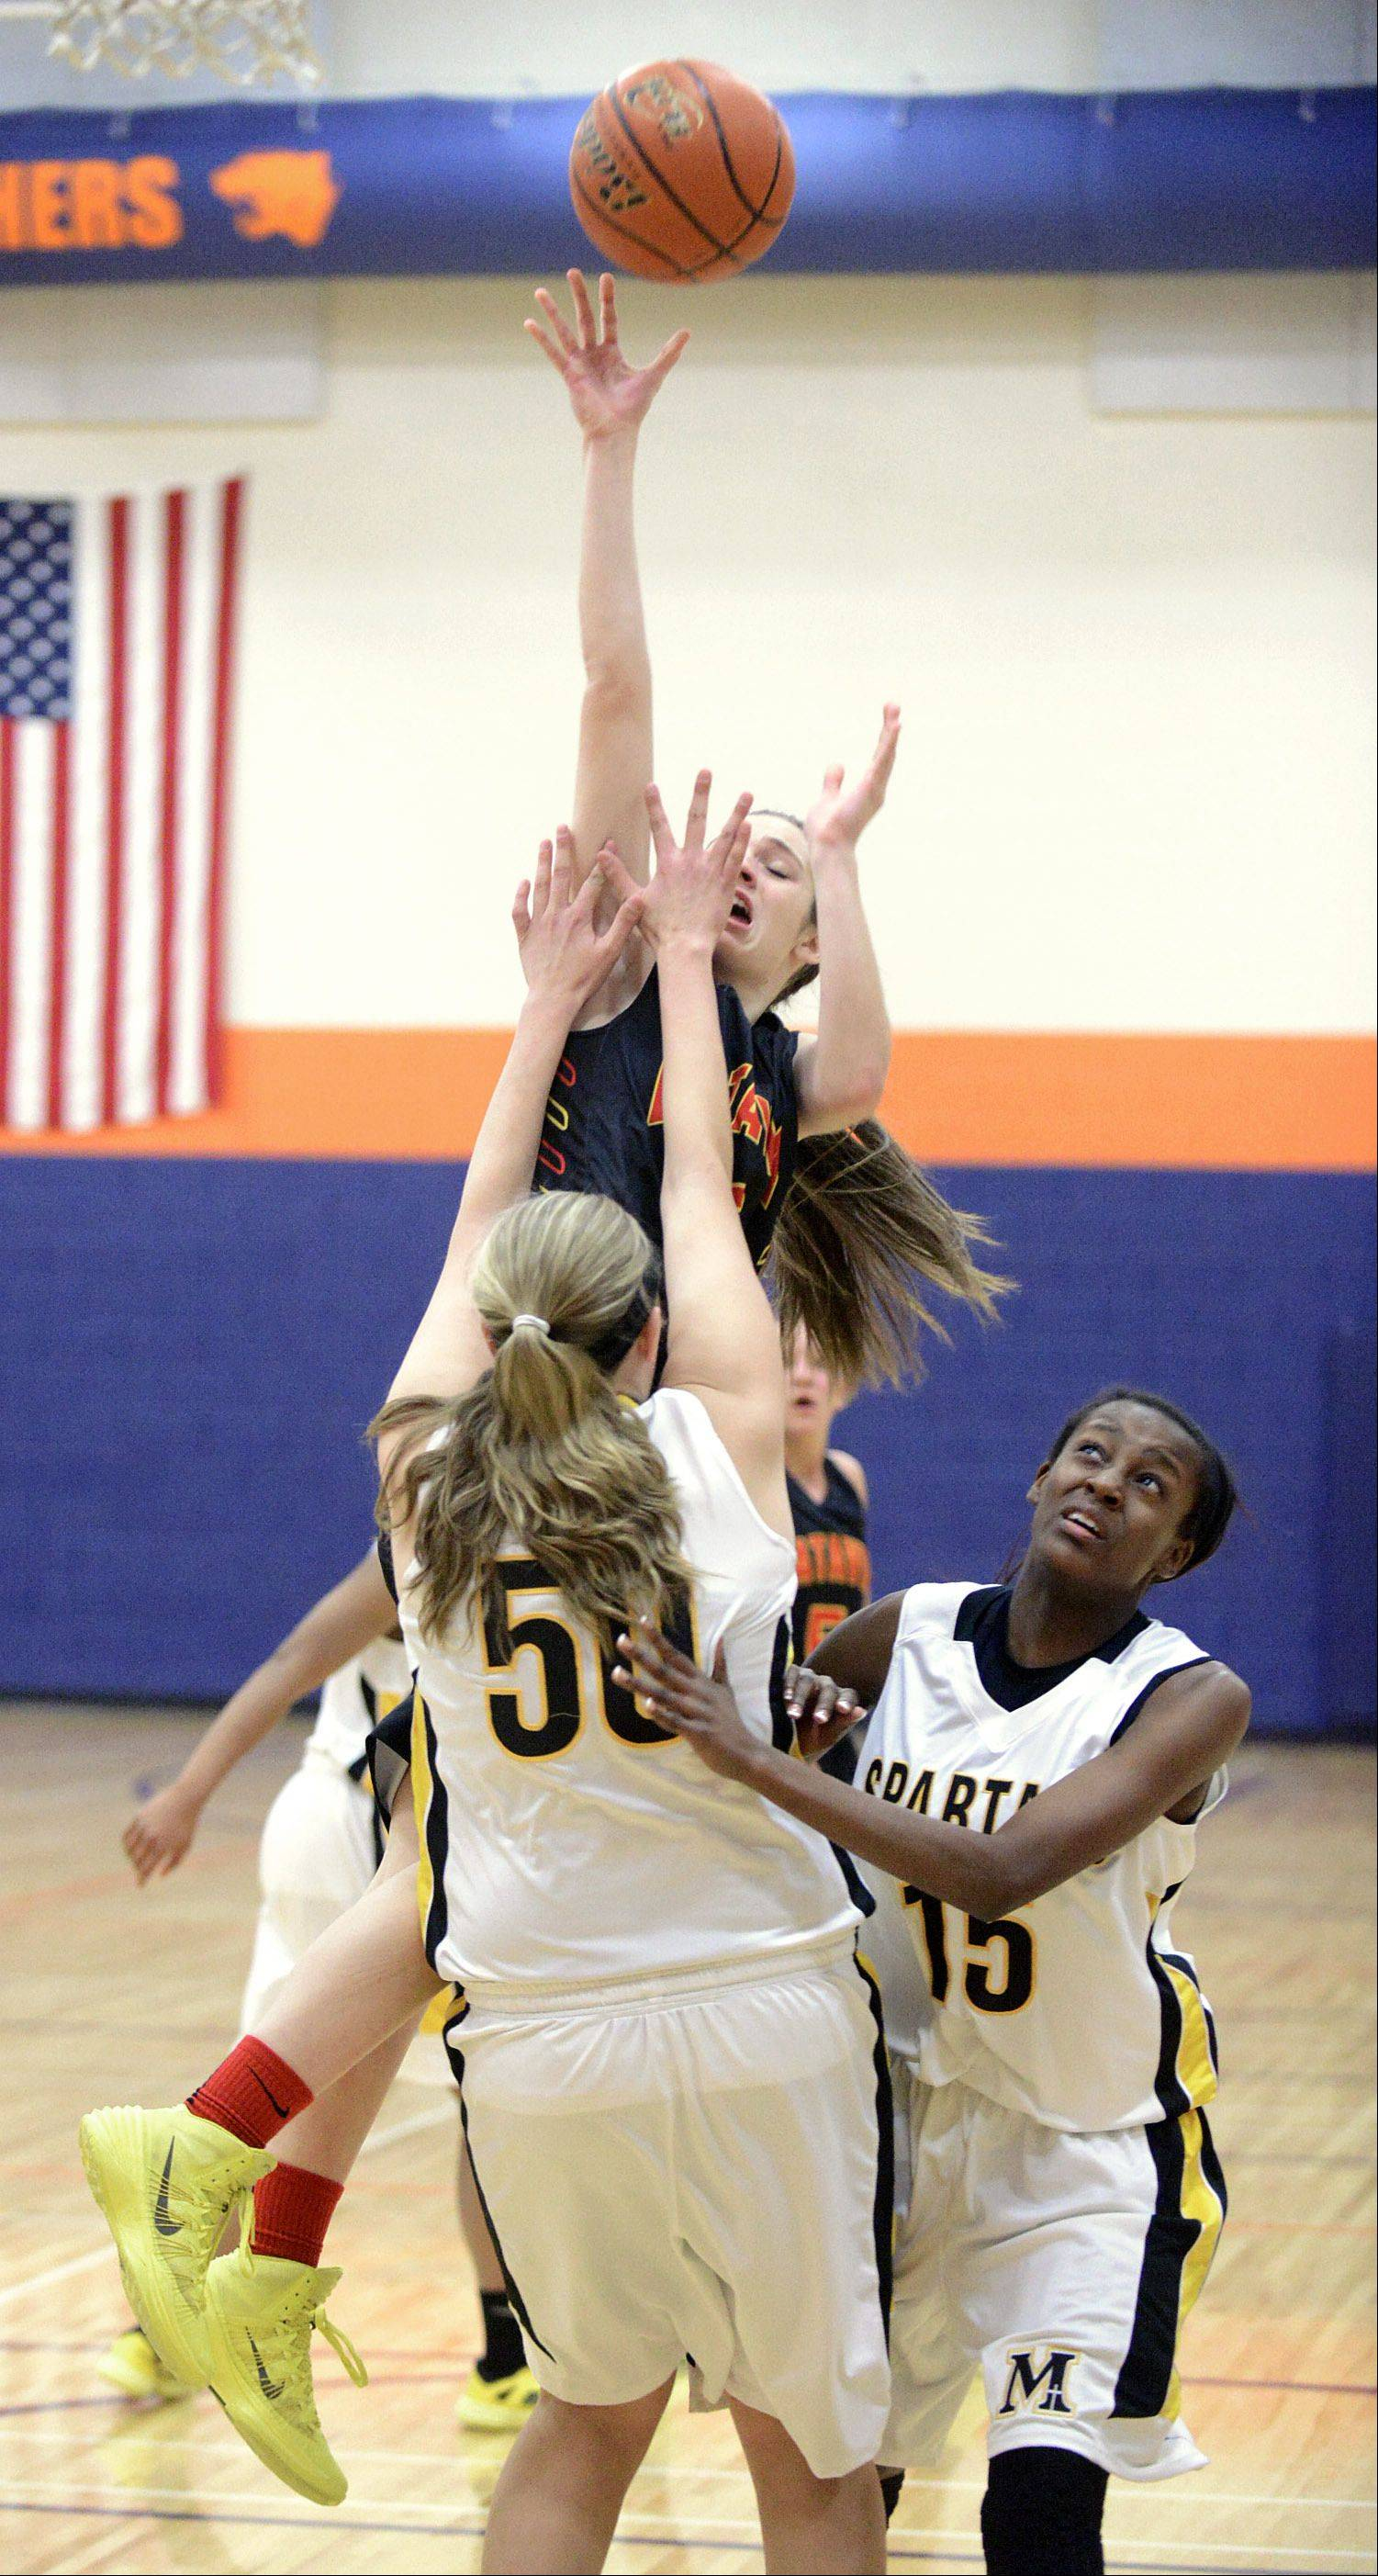 Batavia's Mackenzie Foster shoots over Marian Catholic's Kaitlyn Sedor in the first quarter on Wednesday, December 18.